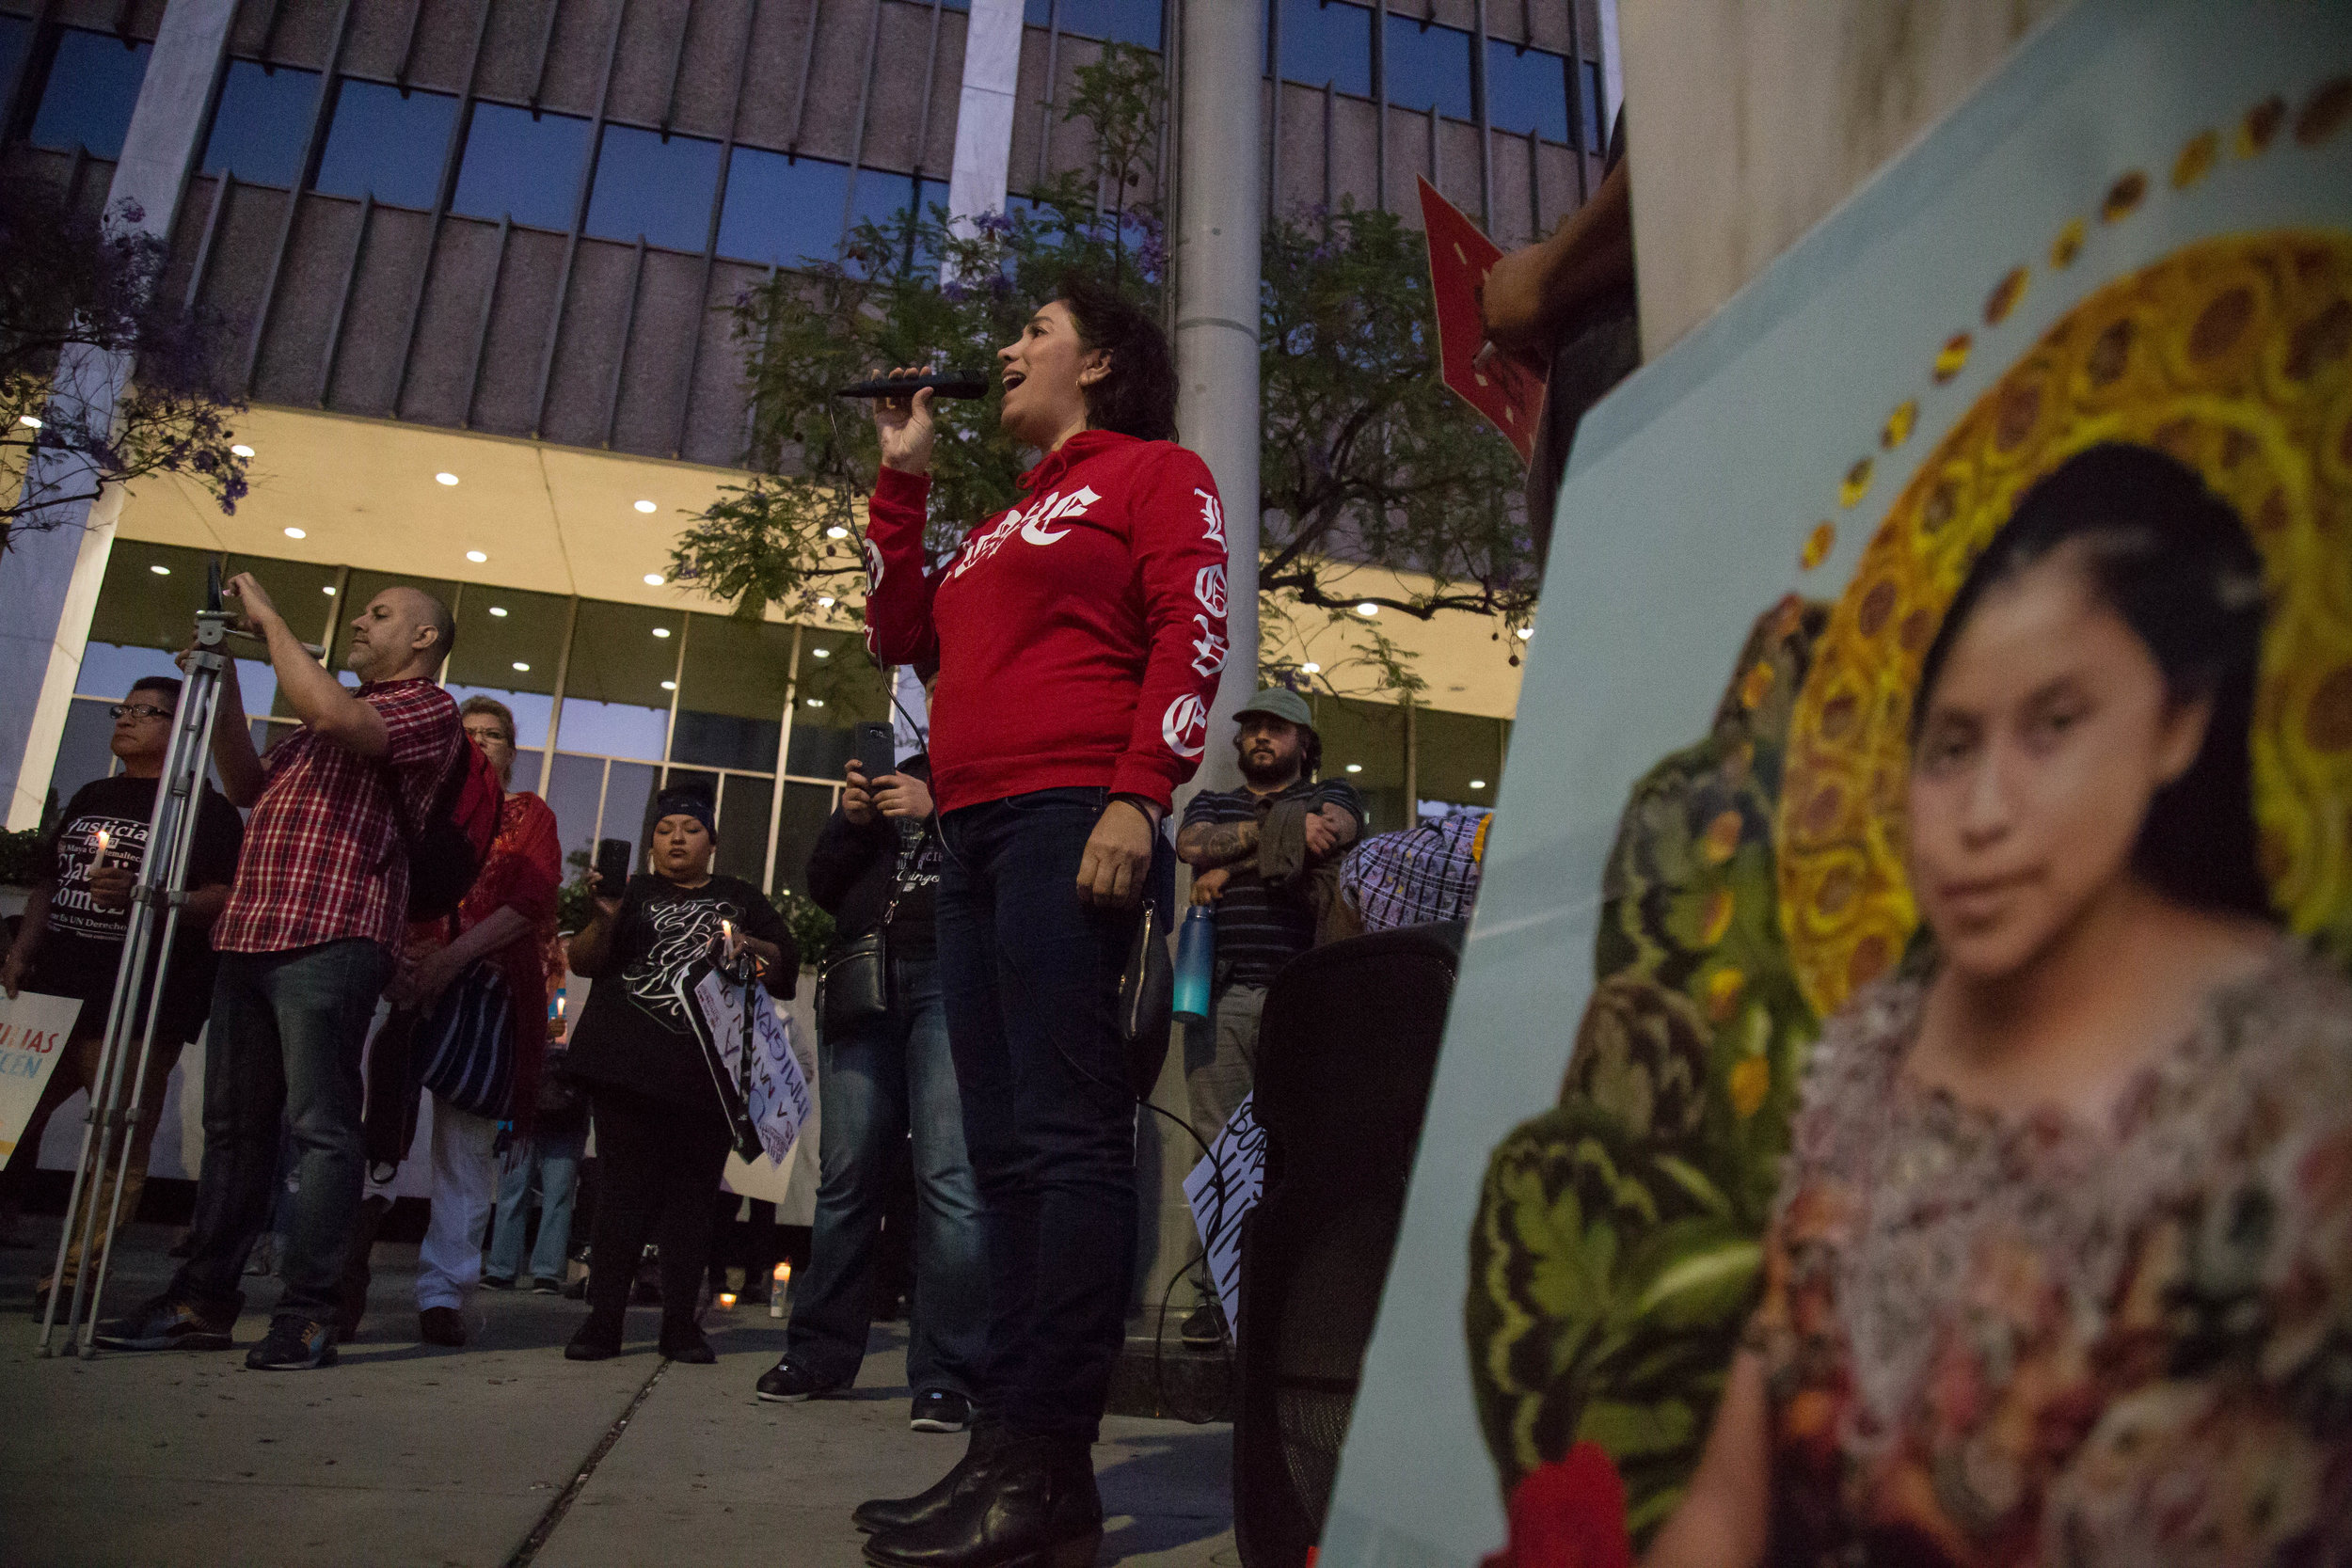 """One of the participants of """"Justice for Claudia and All kidnapped Indigenous children!"""" gives a speech in front of United States Citizenship and Immigration building in Downtown Los Angeles, California on June 1st, 2018. (Yuki Iwamura/Corsair Contributor)"""